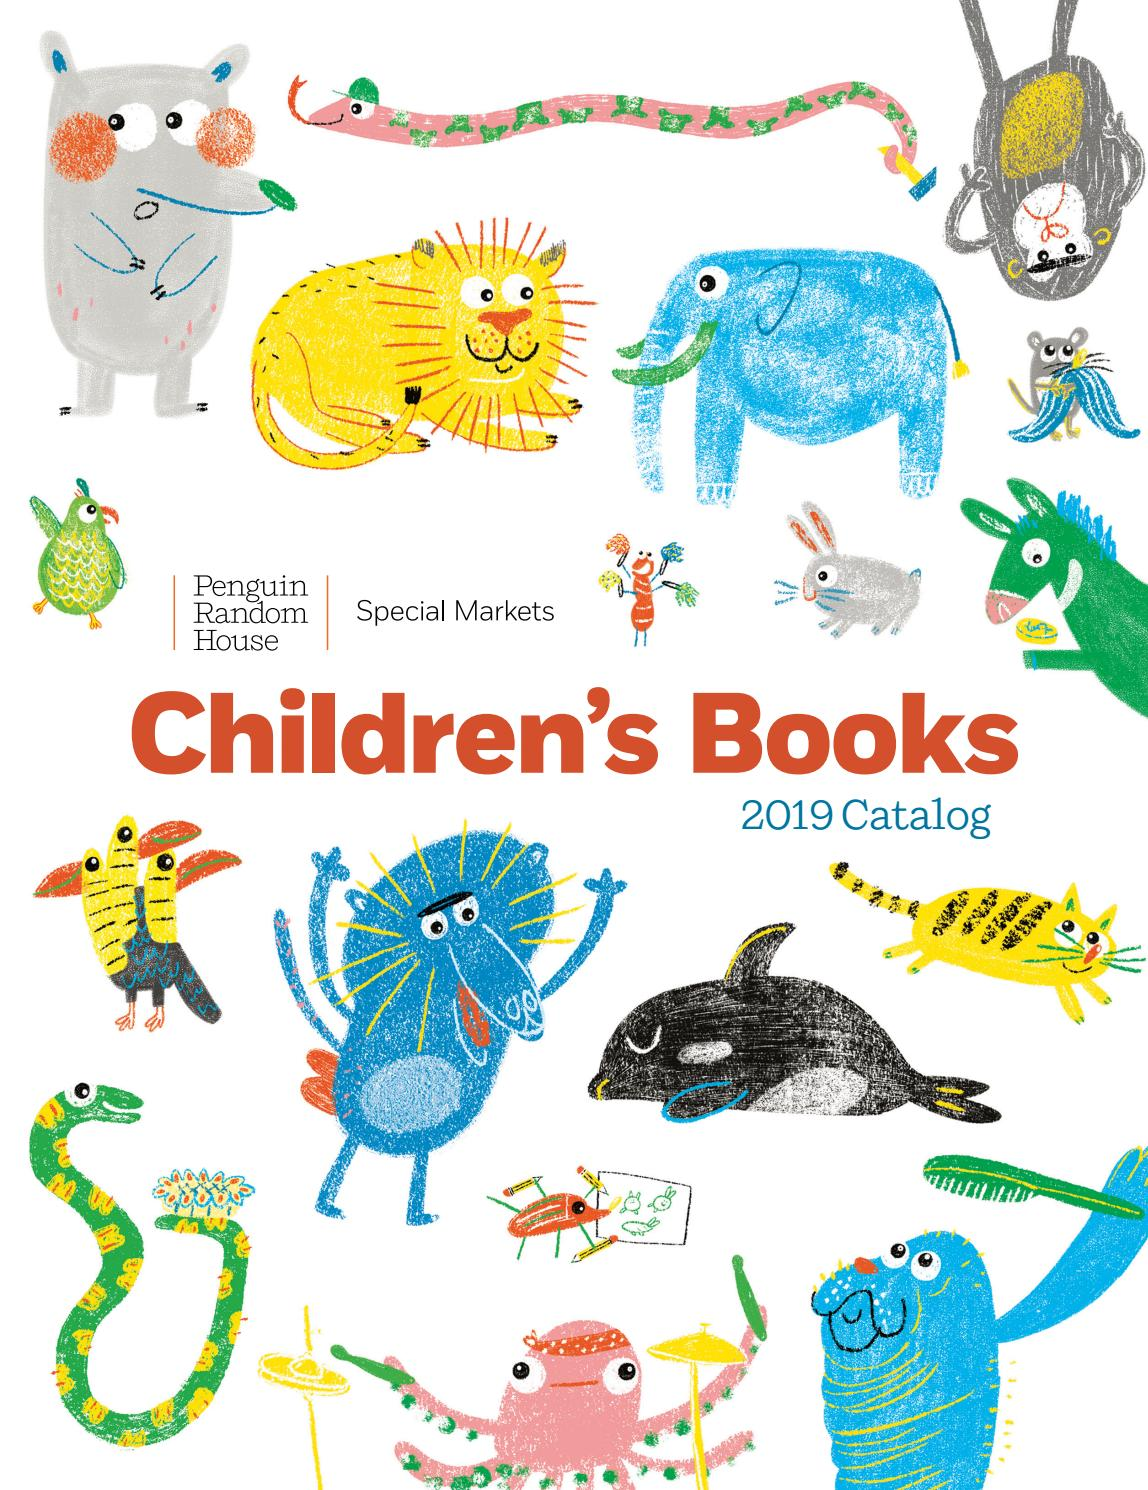 Wicked Libro Penguin Random House Children S 2019 Catalog By Penguin Random